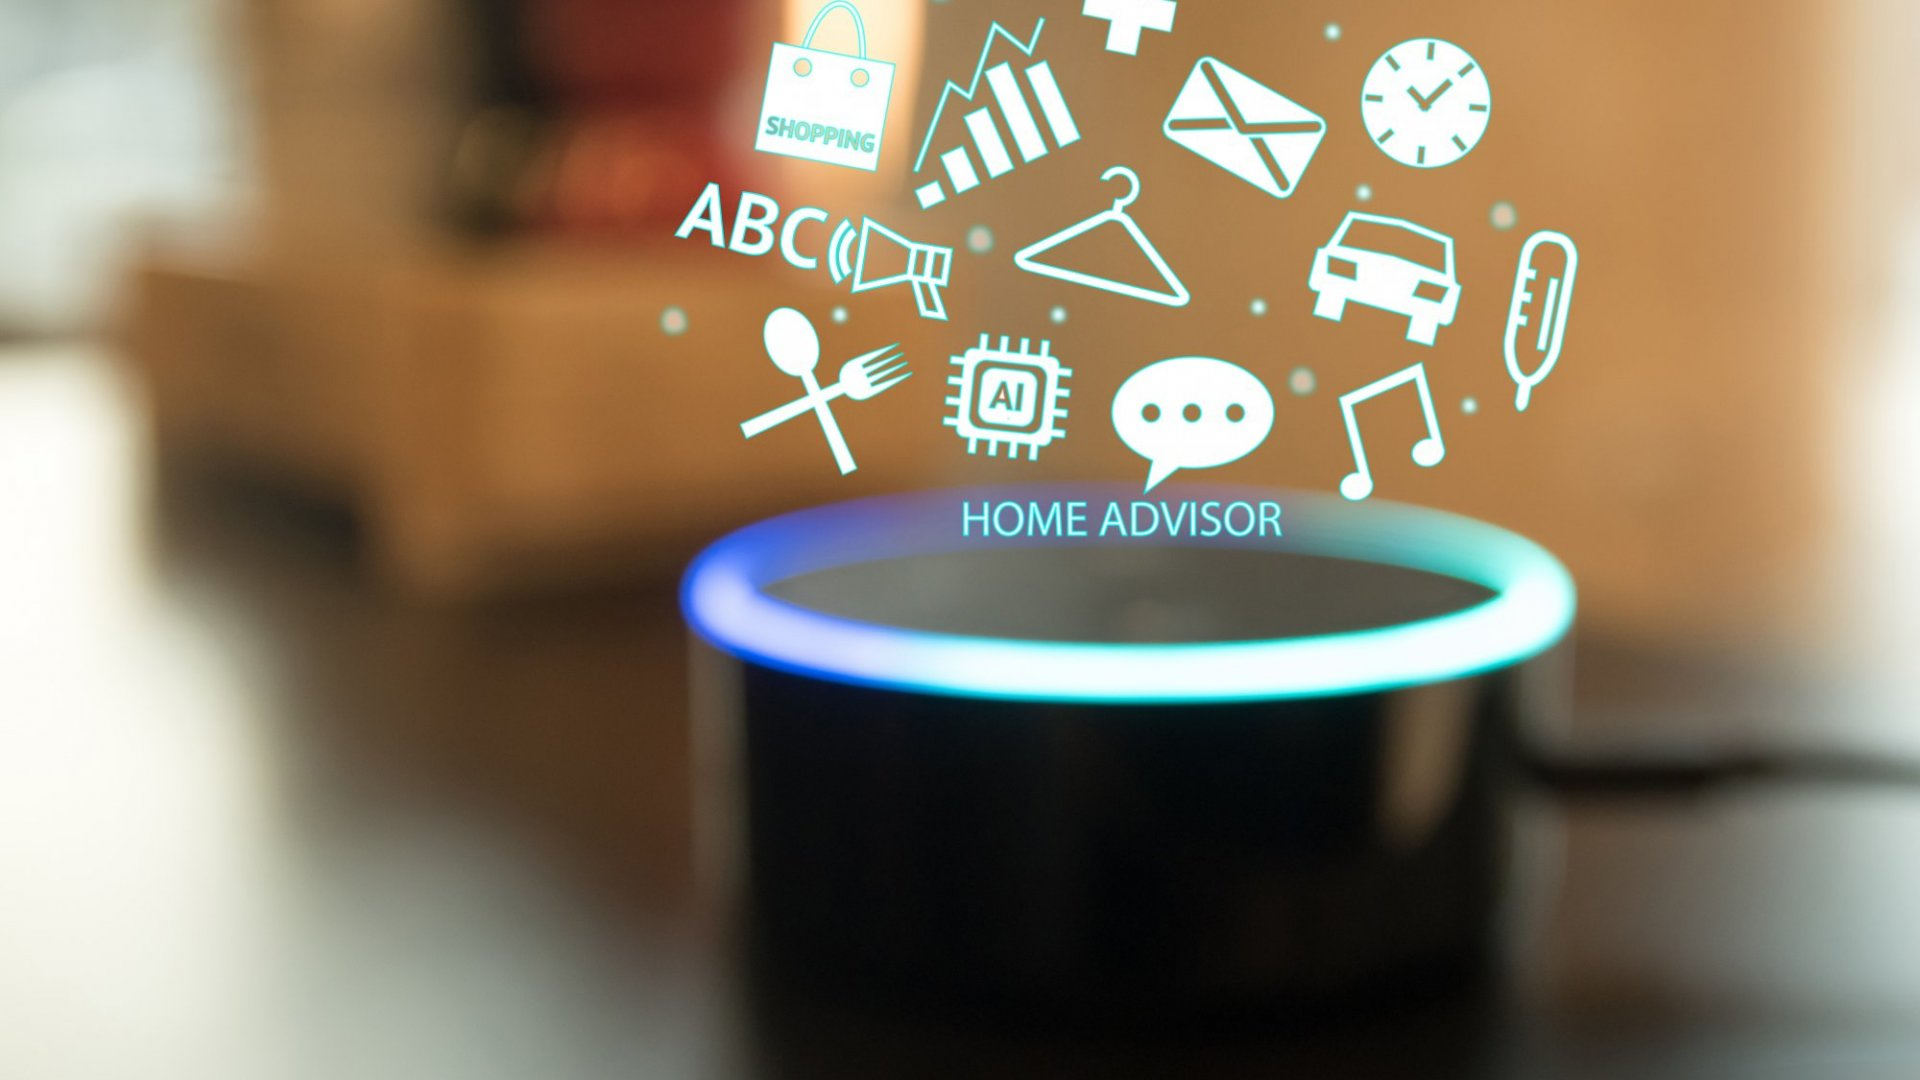 How to Make Alexa, Siri, and Google Assistant Love Your Business